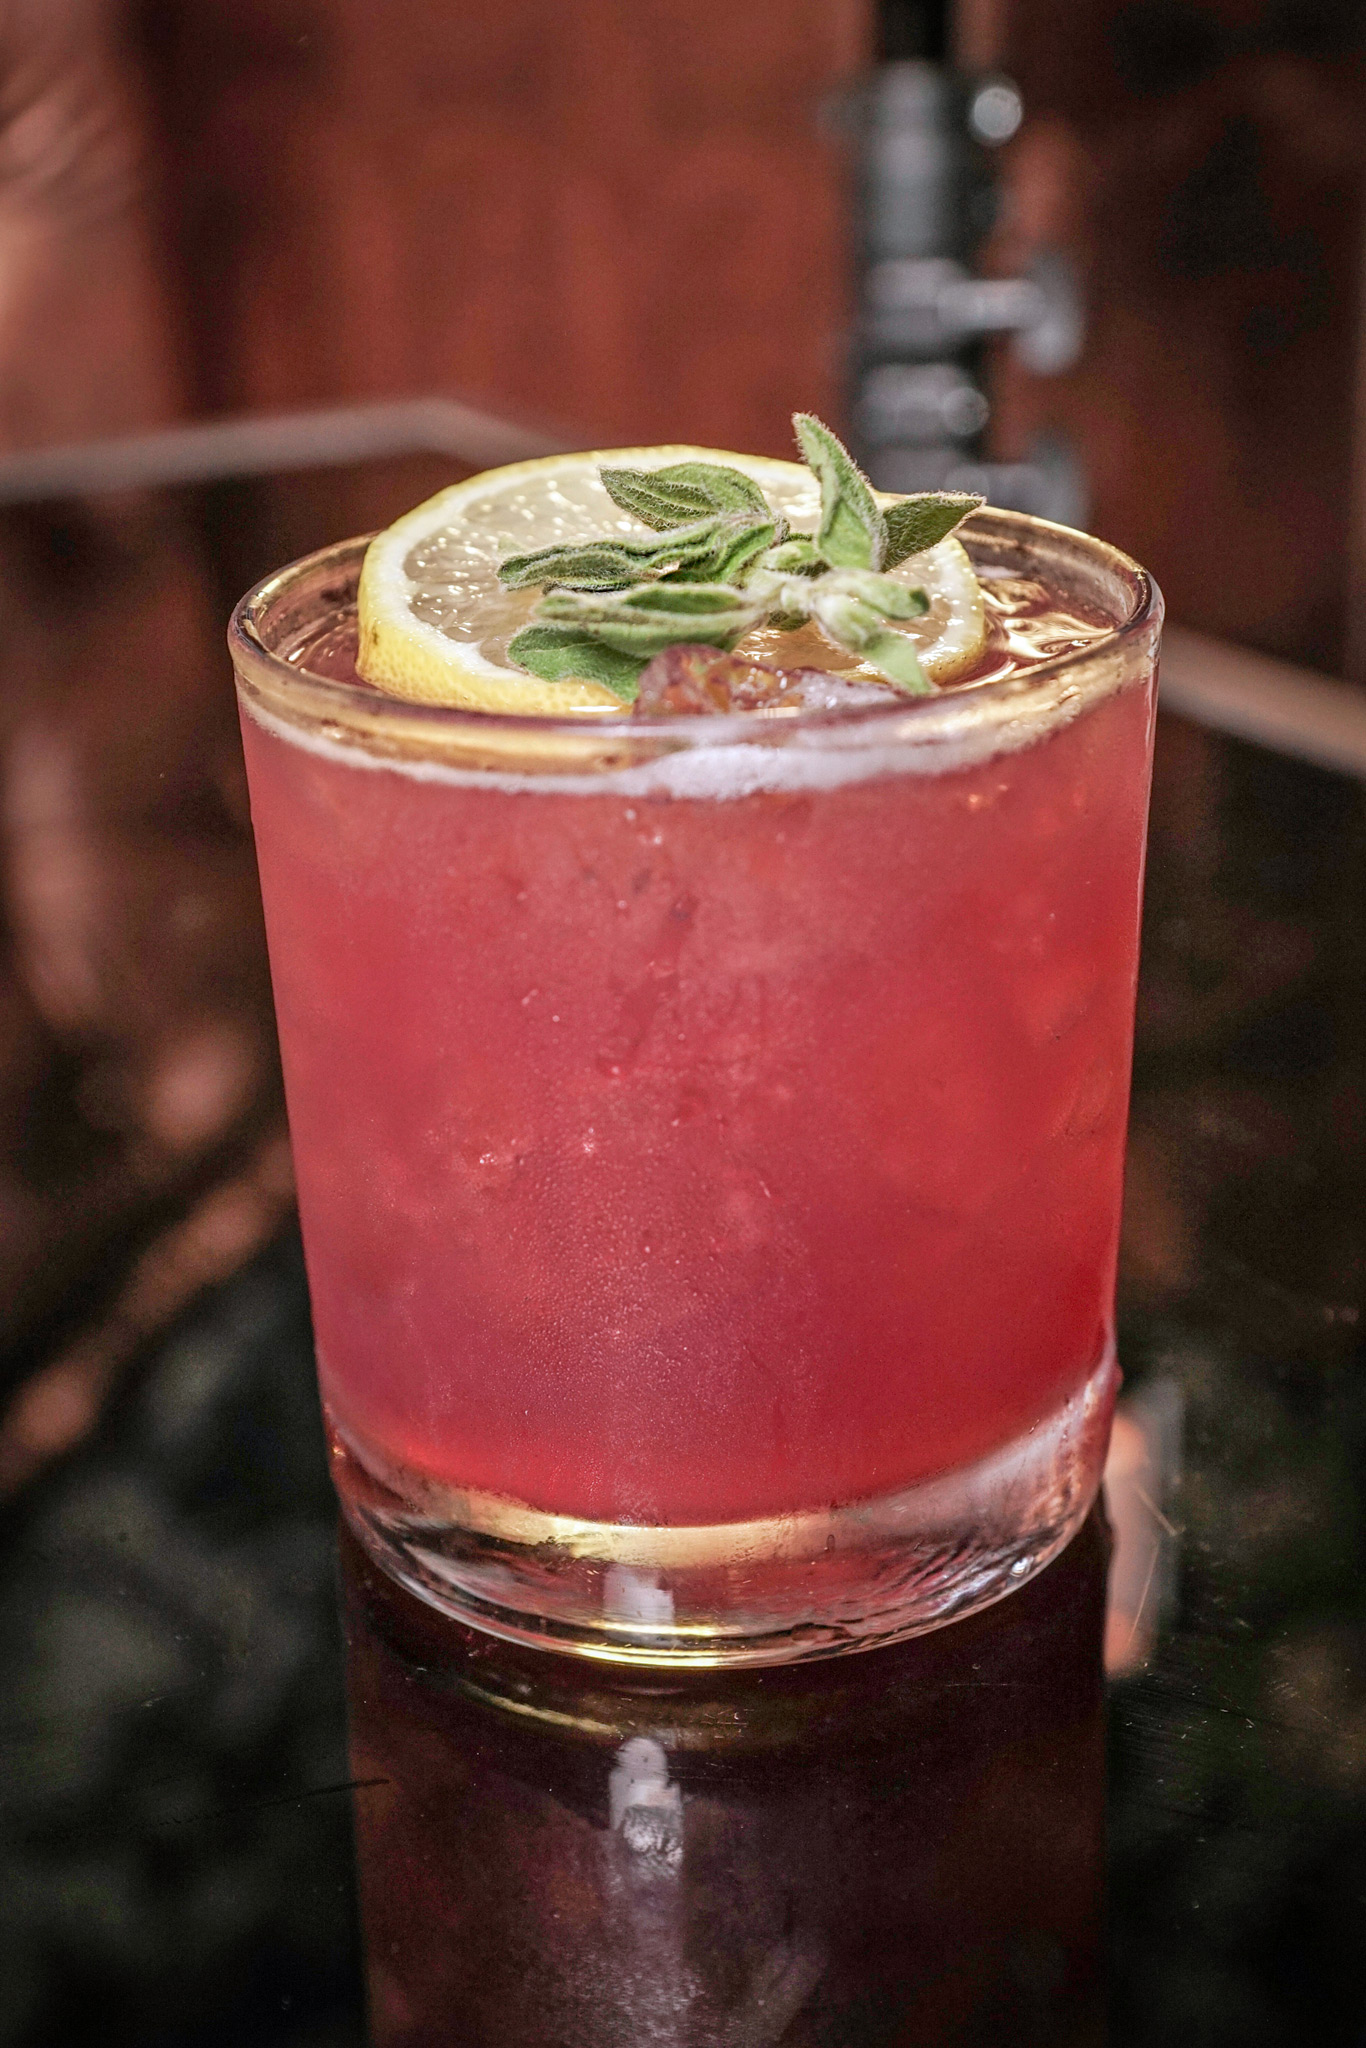 Secret Garden - grey goose vodka, mathilde cassis black currant liqueur, fresh lemon sour & sage leaves garnished with a lemon wheel & sage leaf